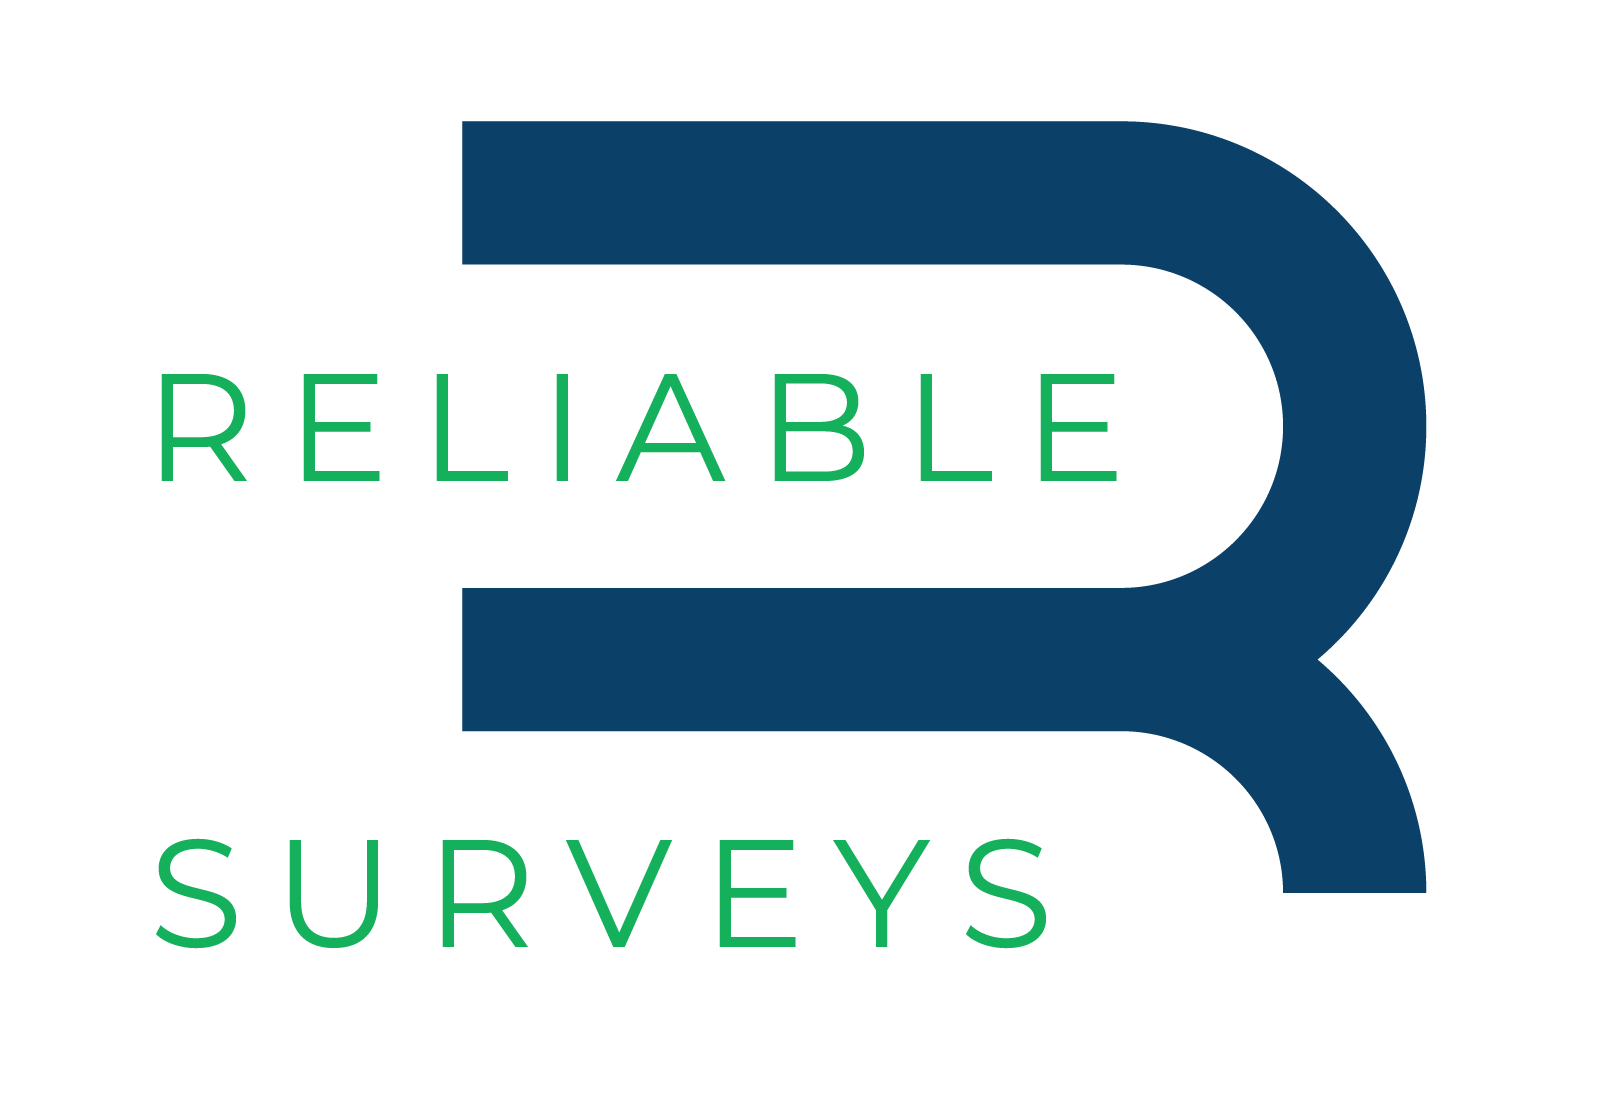 Reliable Surveys Pty Ltd